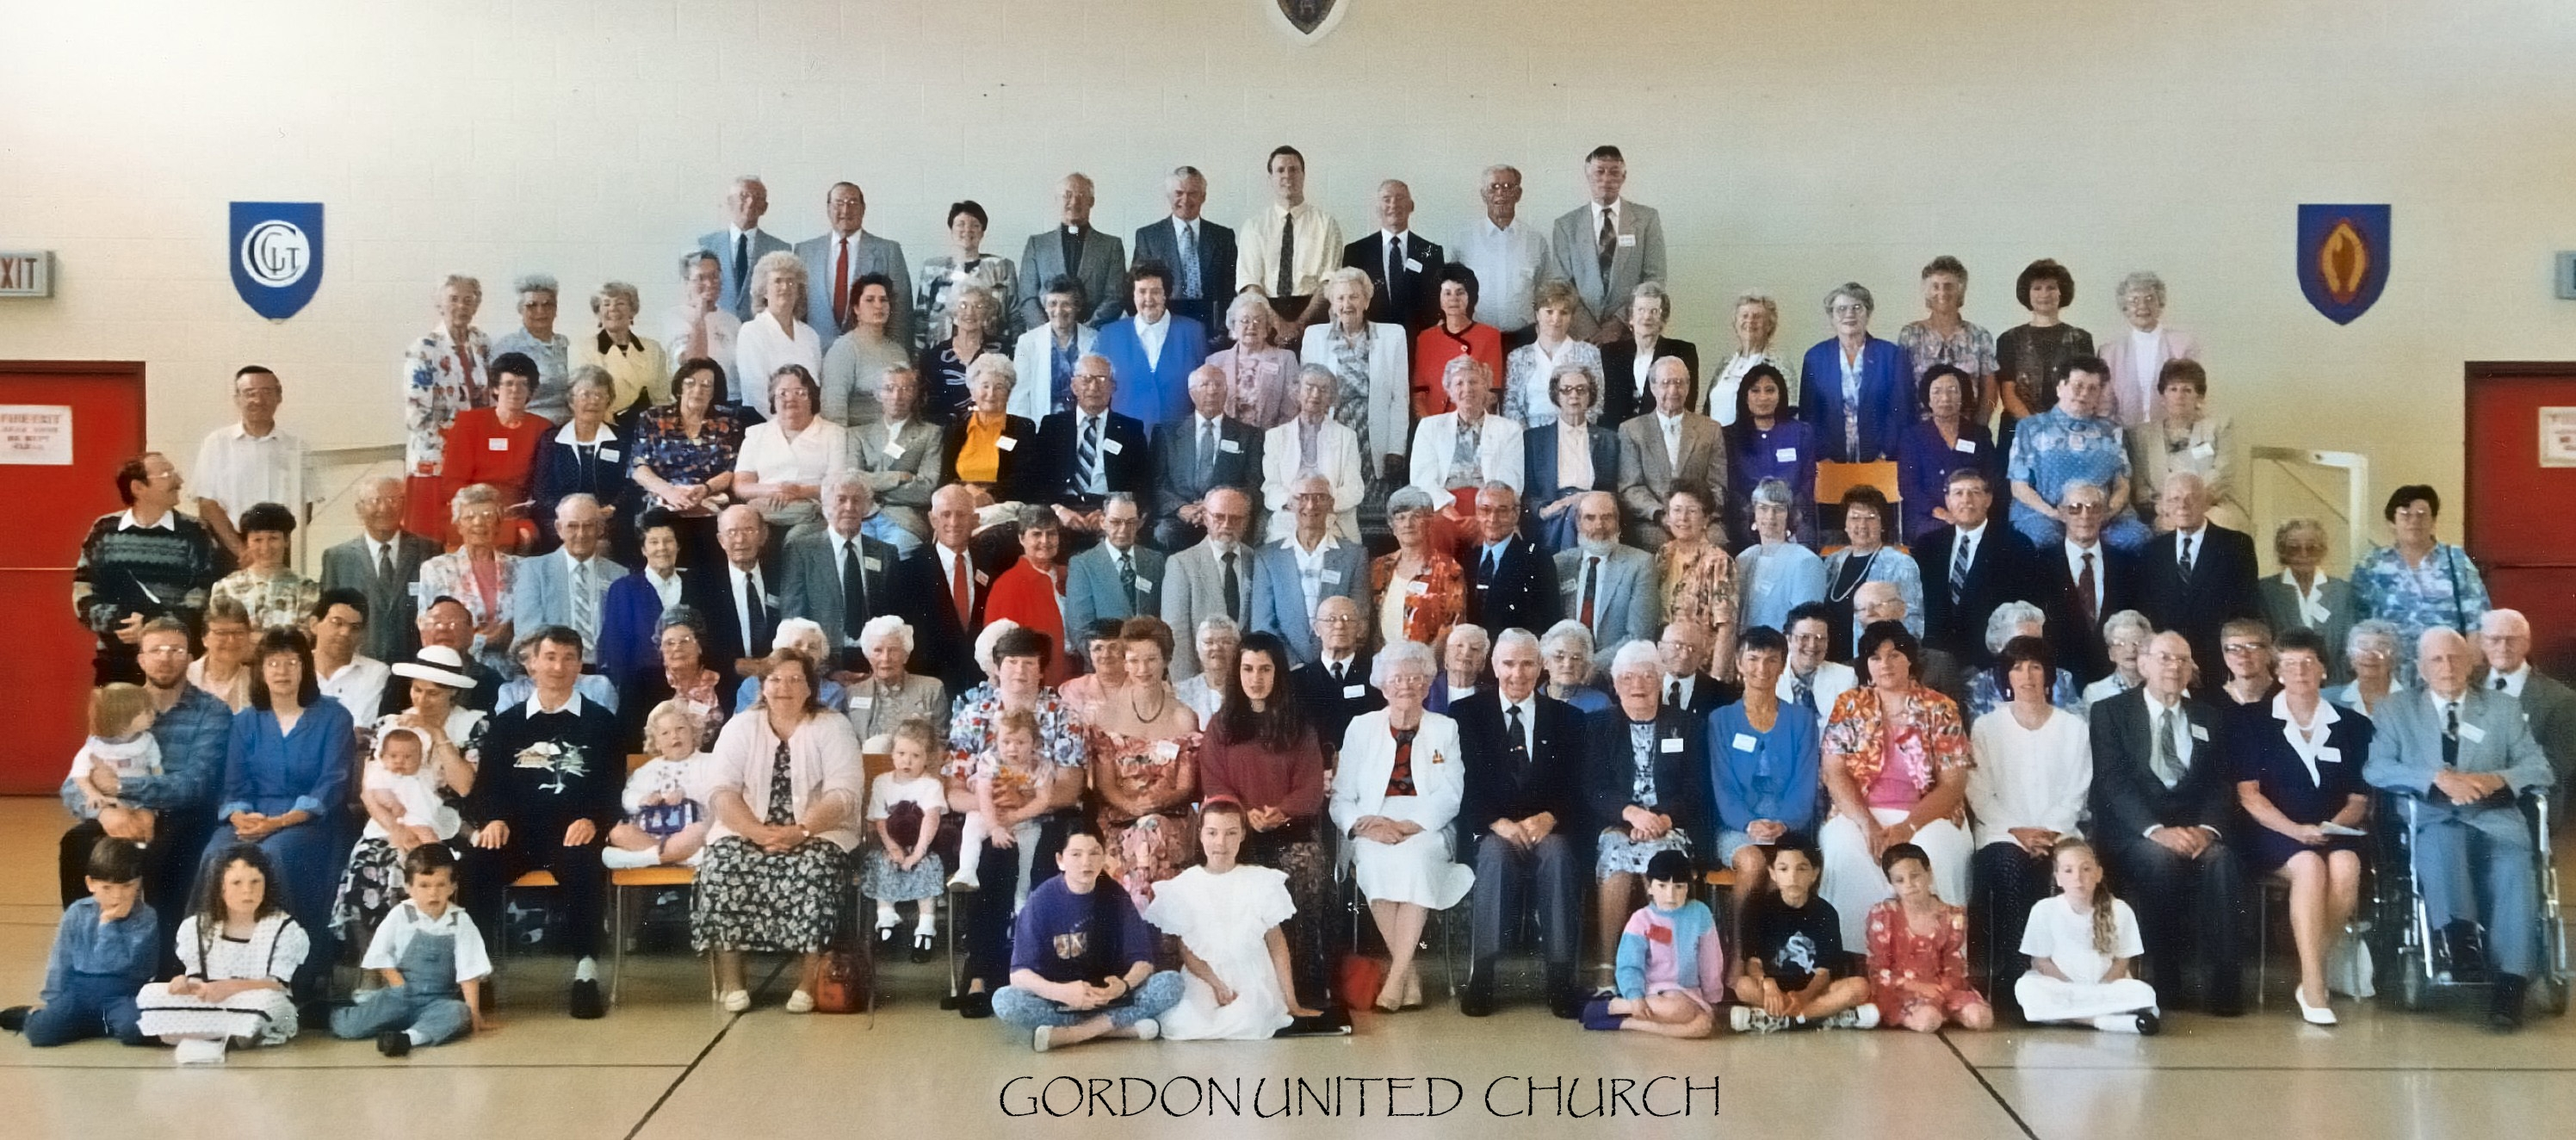 1 congregation photo Don Hatfield